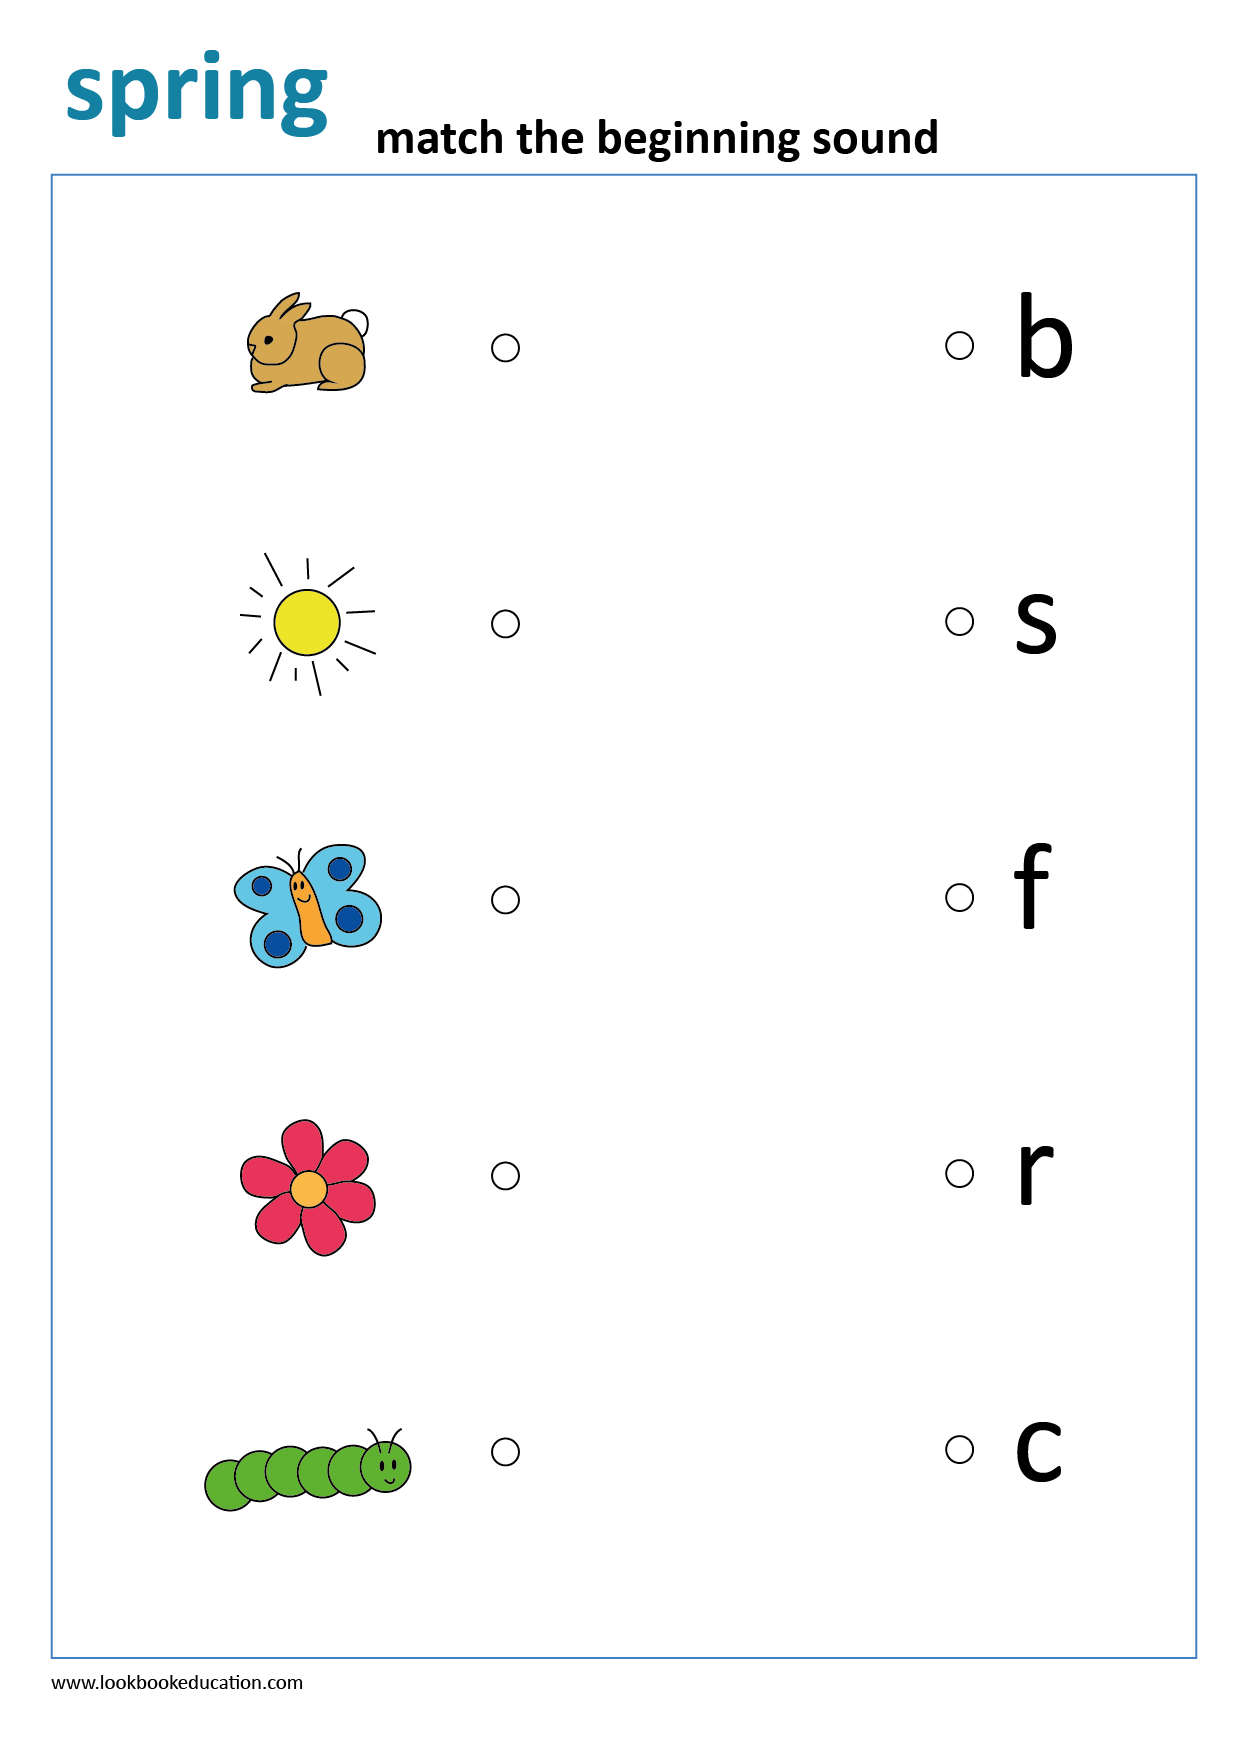 Worksheet Beginning Sound Spring